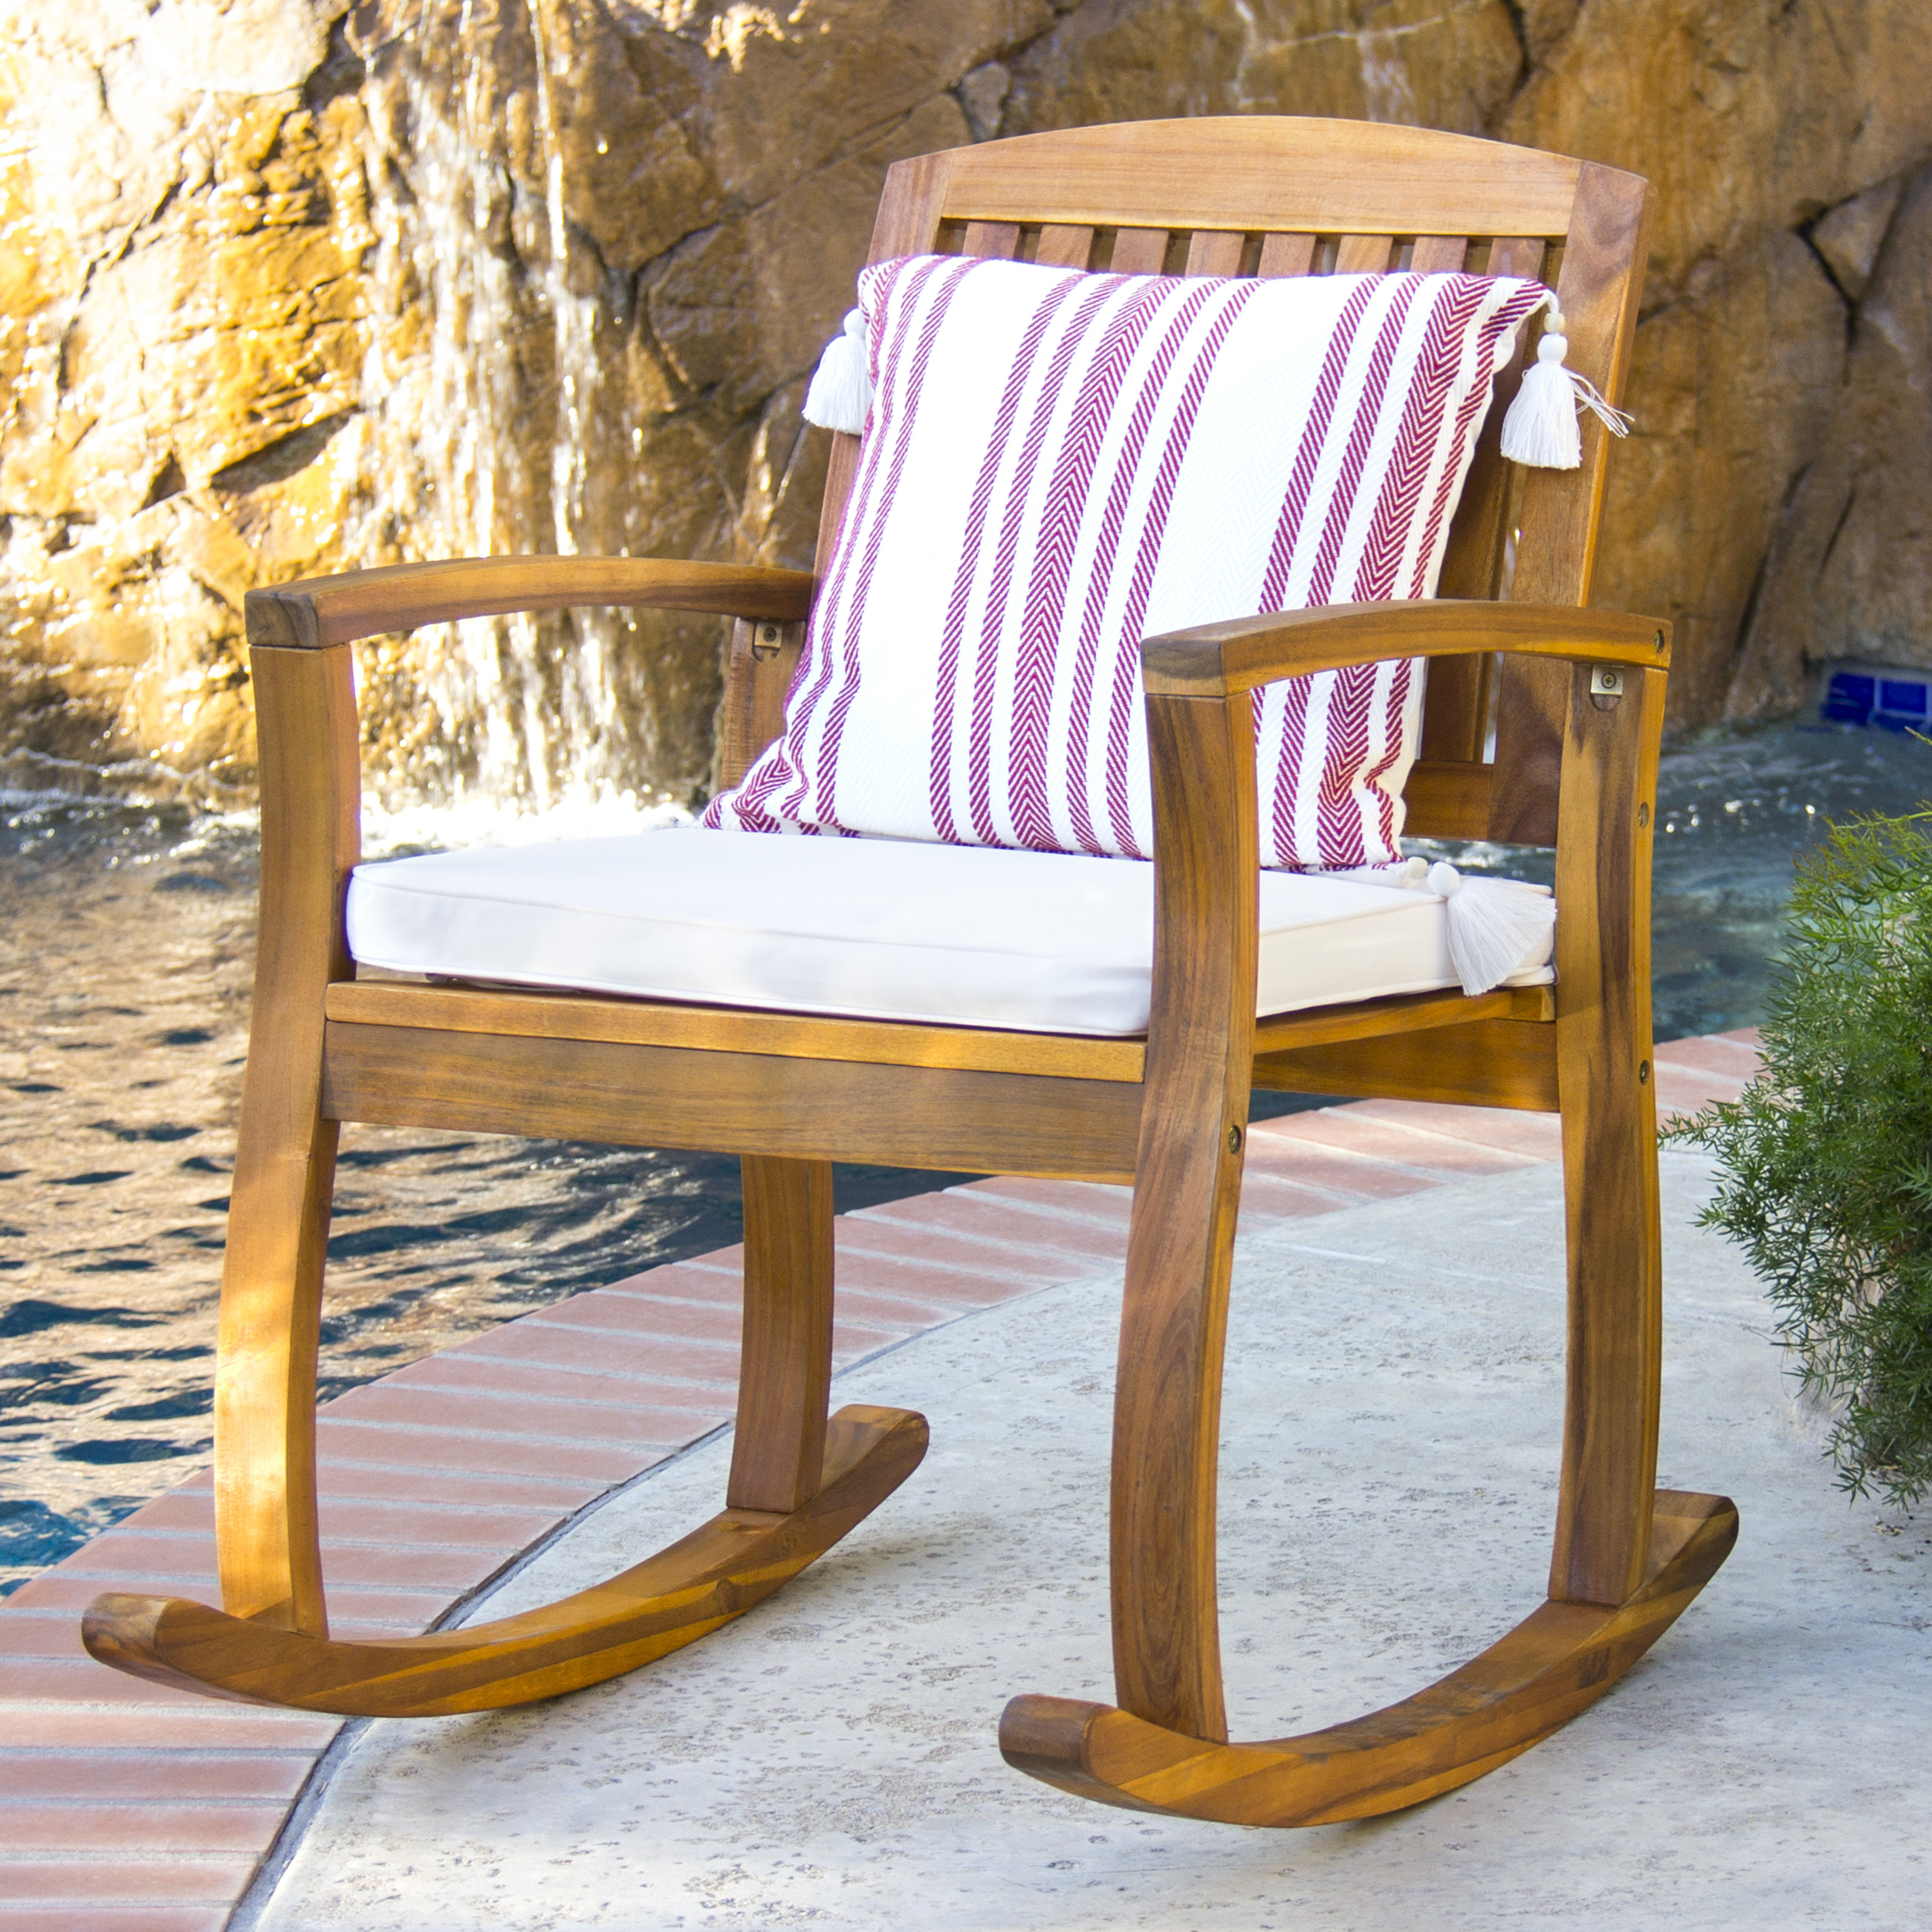 Best Choice Products Outdoor Patio Acacia Wood Rocking Chair W/ Removable  Seat Cushion Inside Traditional Indoor Acacia Wood Rocking Chairs With Cushions (#4 of 20)